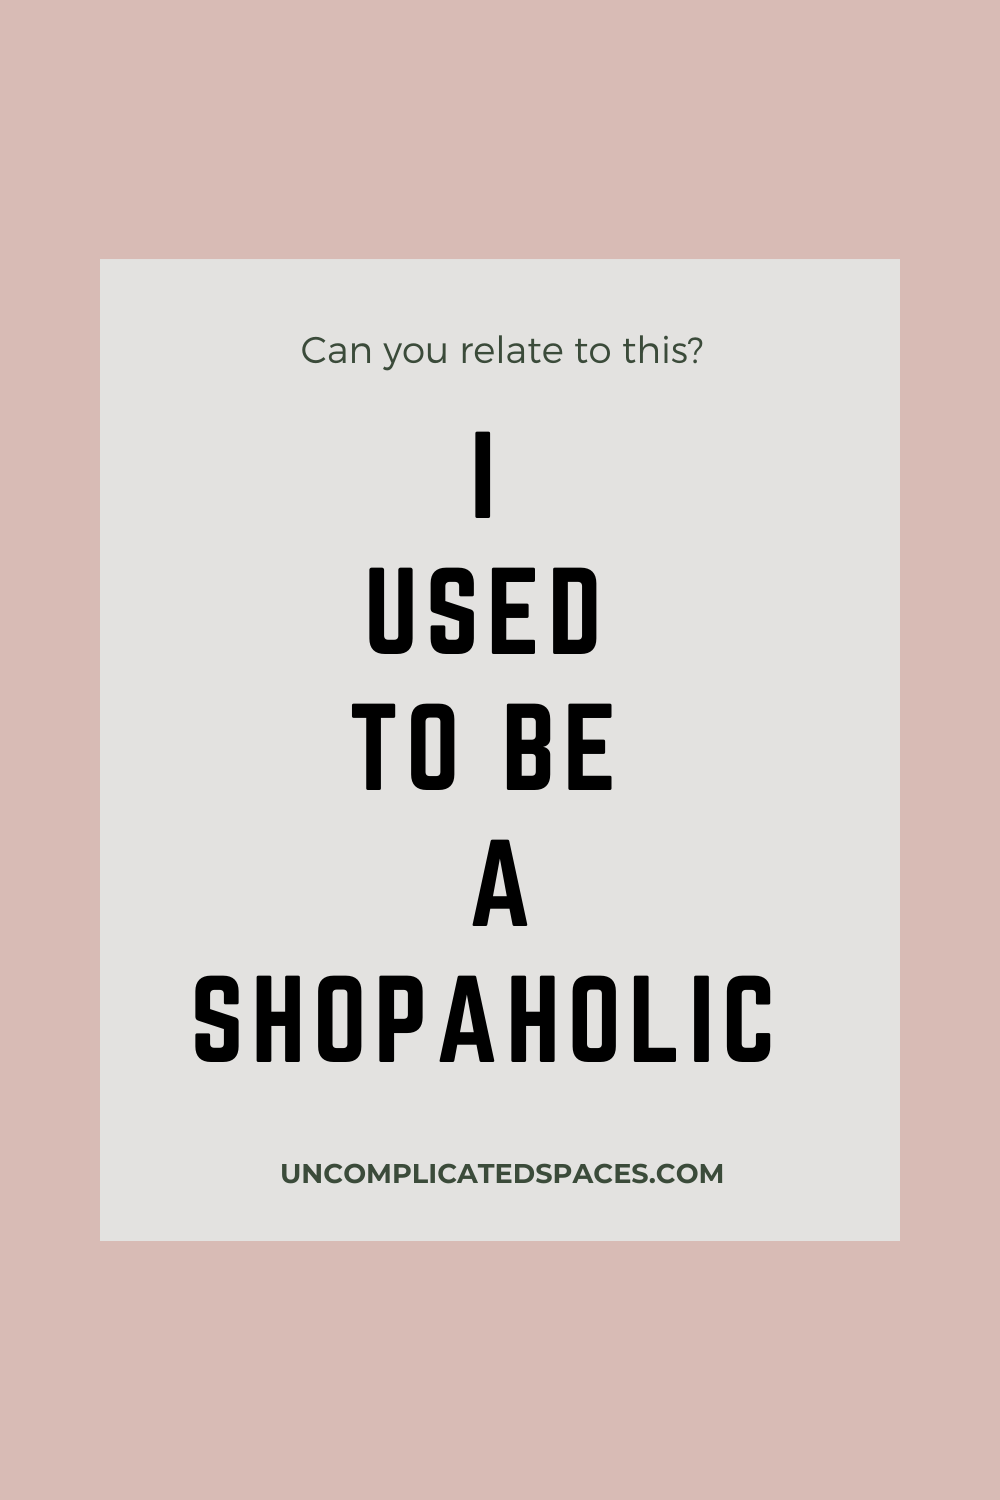 Would you classify yourself as a shopaholic? I used to be one but I've been able to overcome my shopping addiction. Can you relate? #shopaholic #shoppingaddict #addictedtoshopping #recoveringshopaholic #stopbuyingstuff